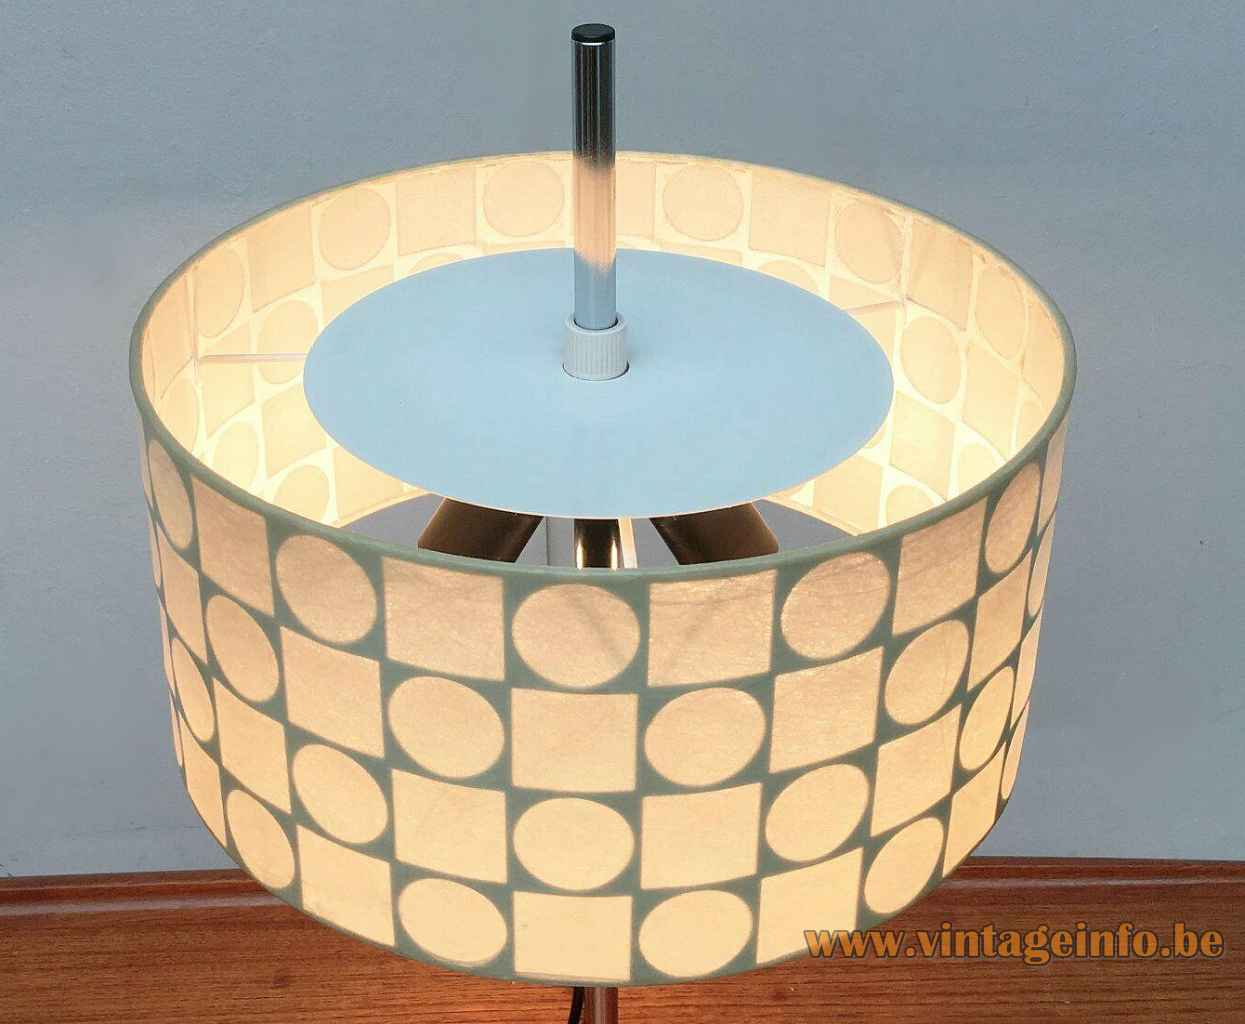 1960s Goldkant Leuchten table lamp geometric fabric lampshade top view chrome rod Germany